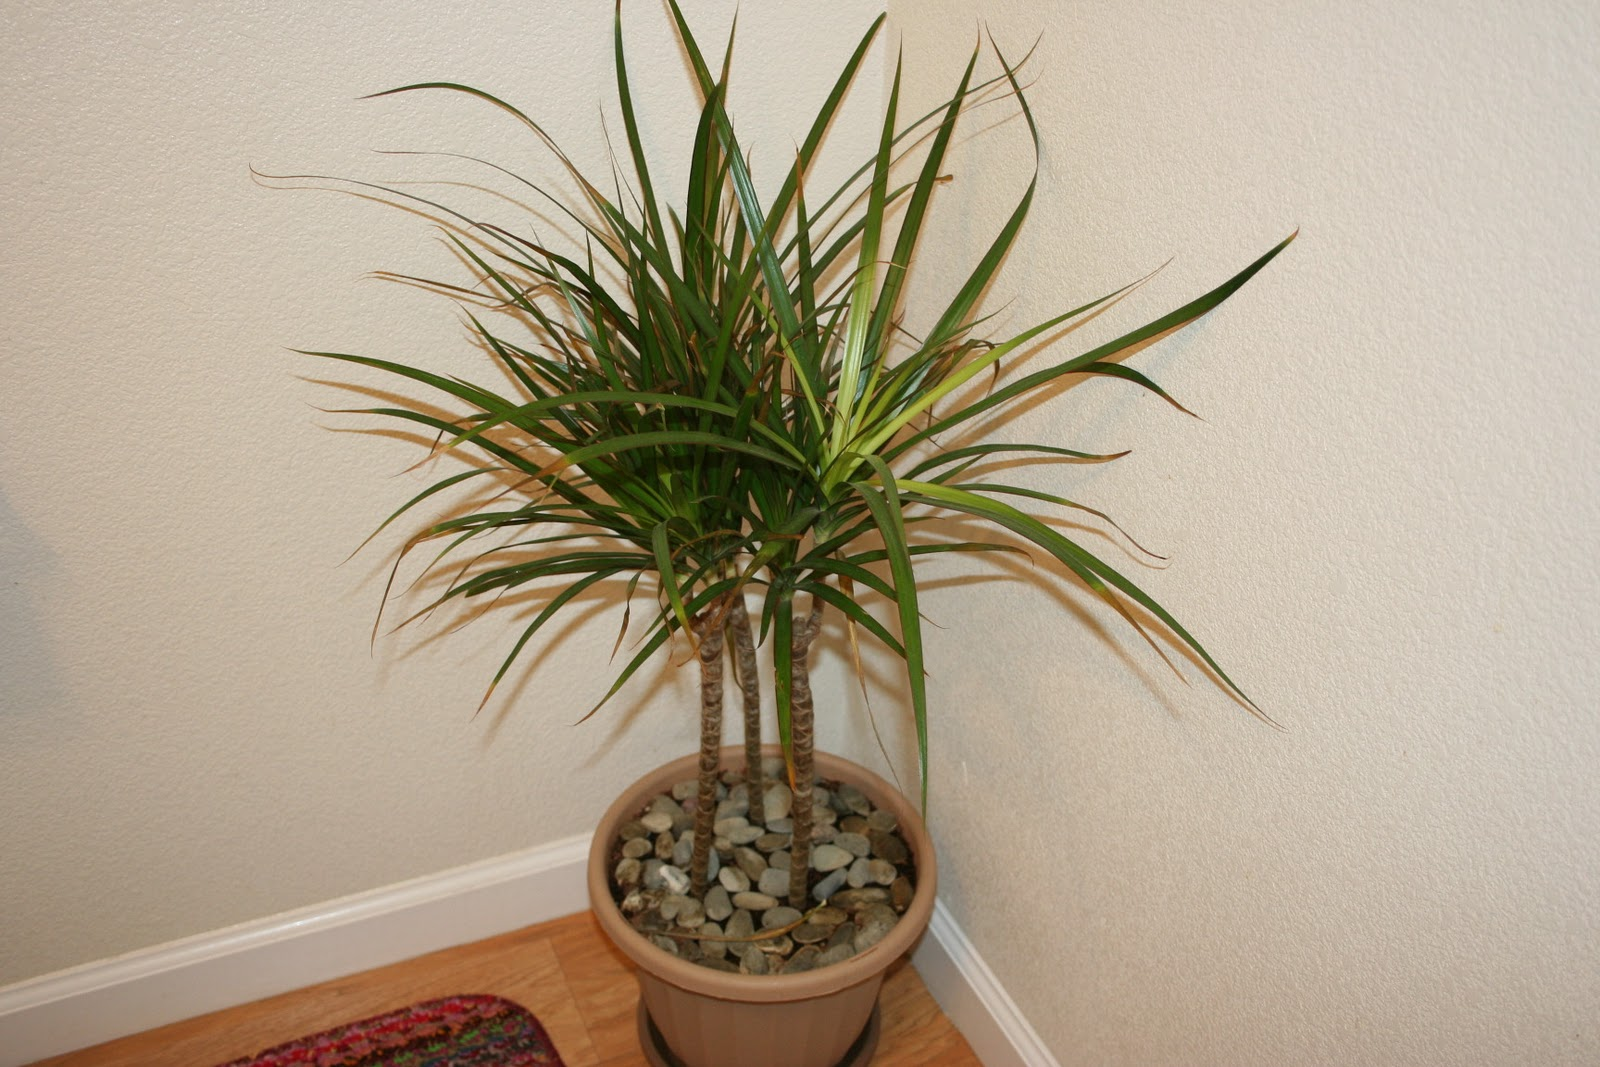 Top 10 tropical house plants any one can grow the self sufficient living - Best house plants ...